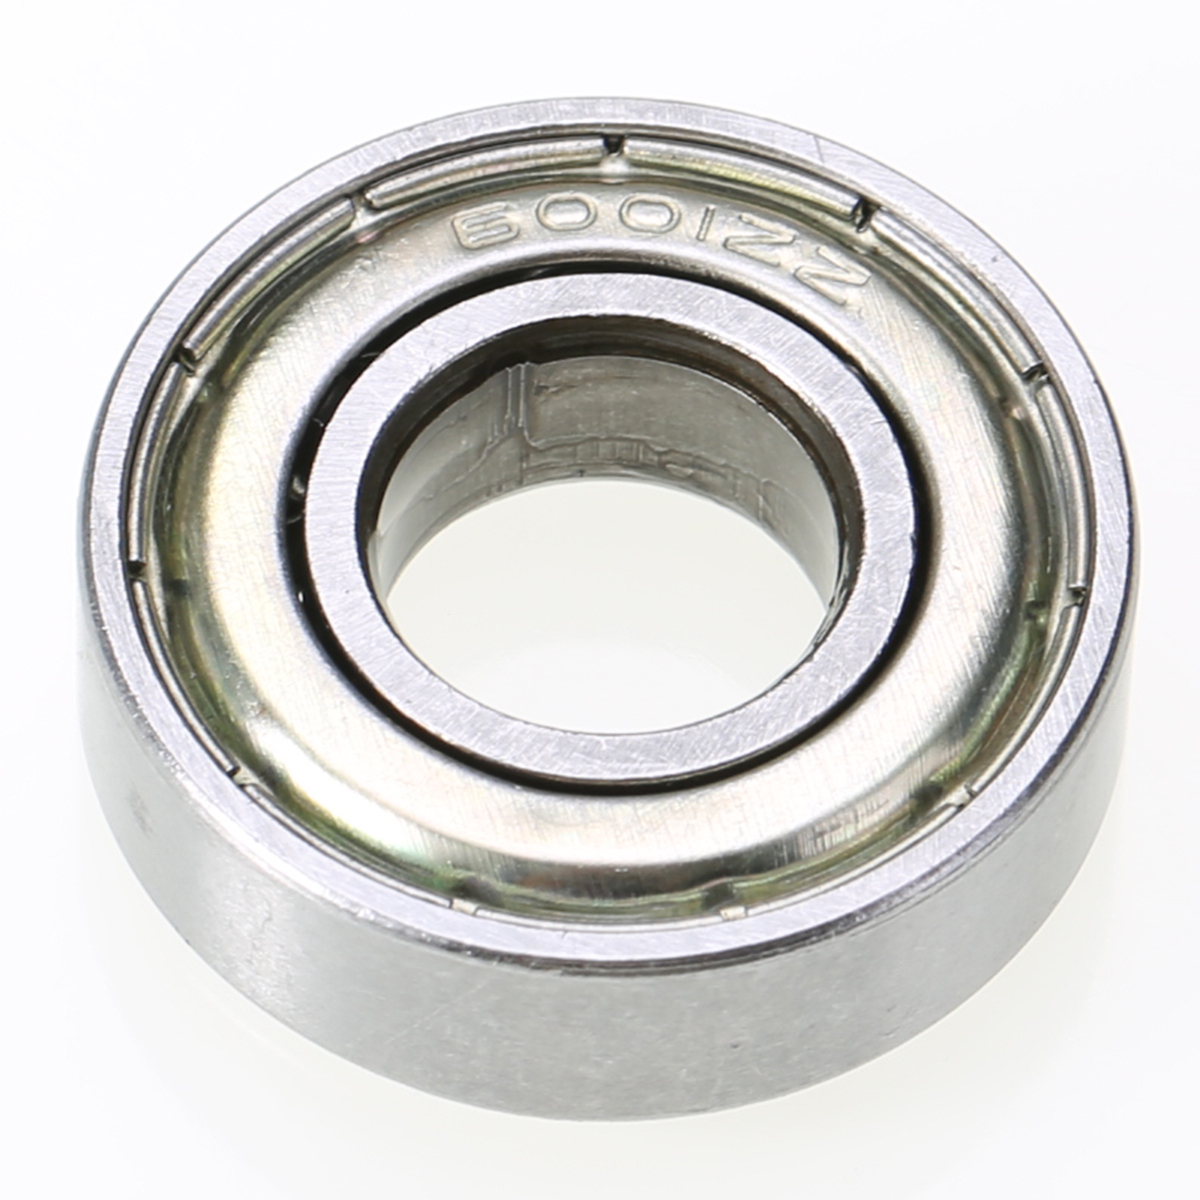 5pcs Mayitr Miniature Deep Groove Radial Bearings High Precision 6001ZZ Shielded Ball Bearing 12*28*8mm for Electric Motors Whee gcr15 6026 130x200x33mm high precision thin deep groove ball bearings abec 1 p0 1 pcs